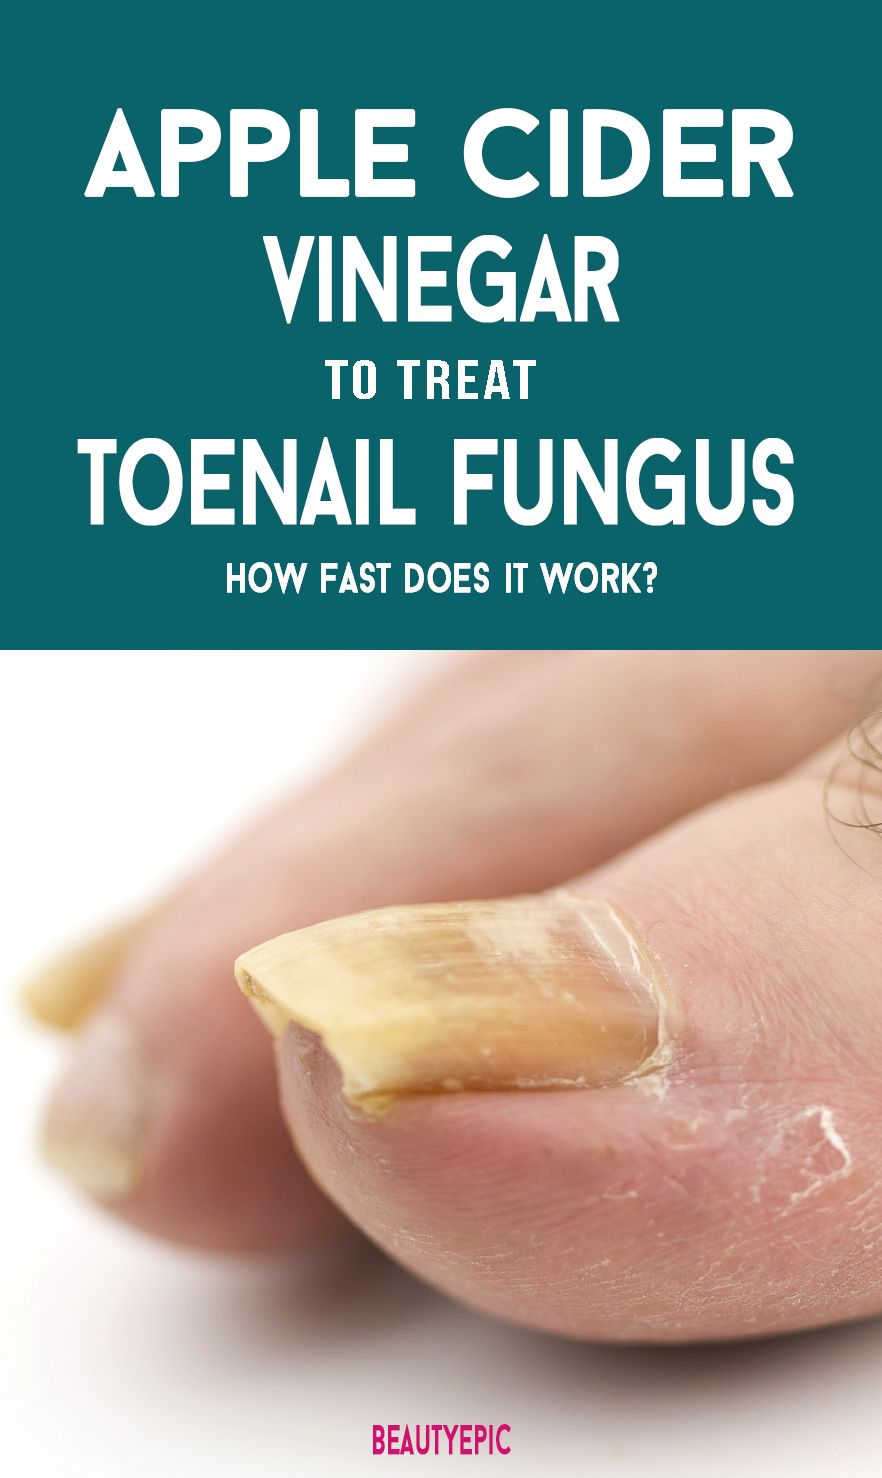 Apple Cider Vinegar For Toenail Fungus Apple Cider Vinegar